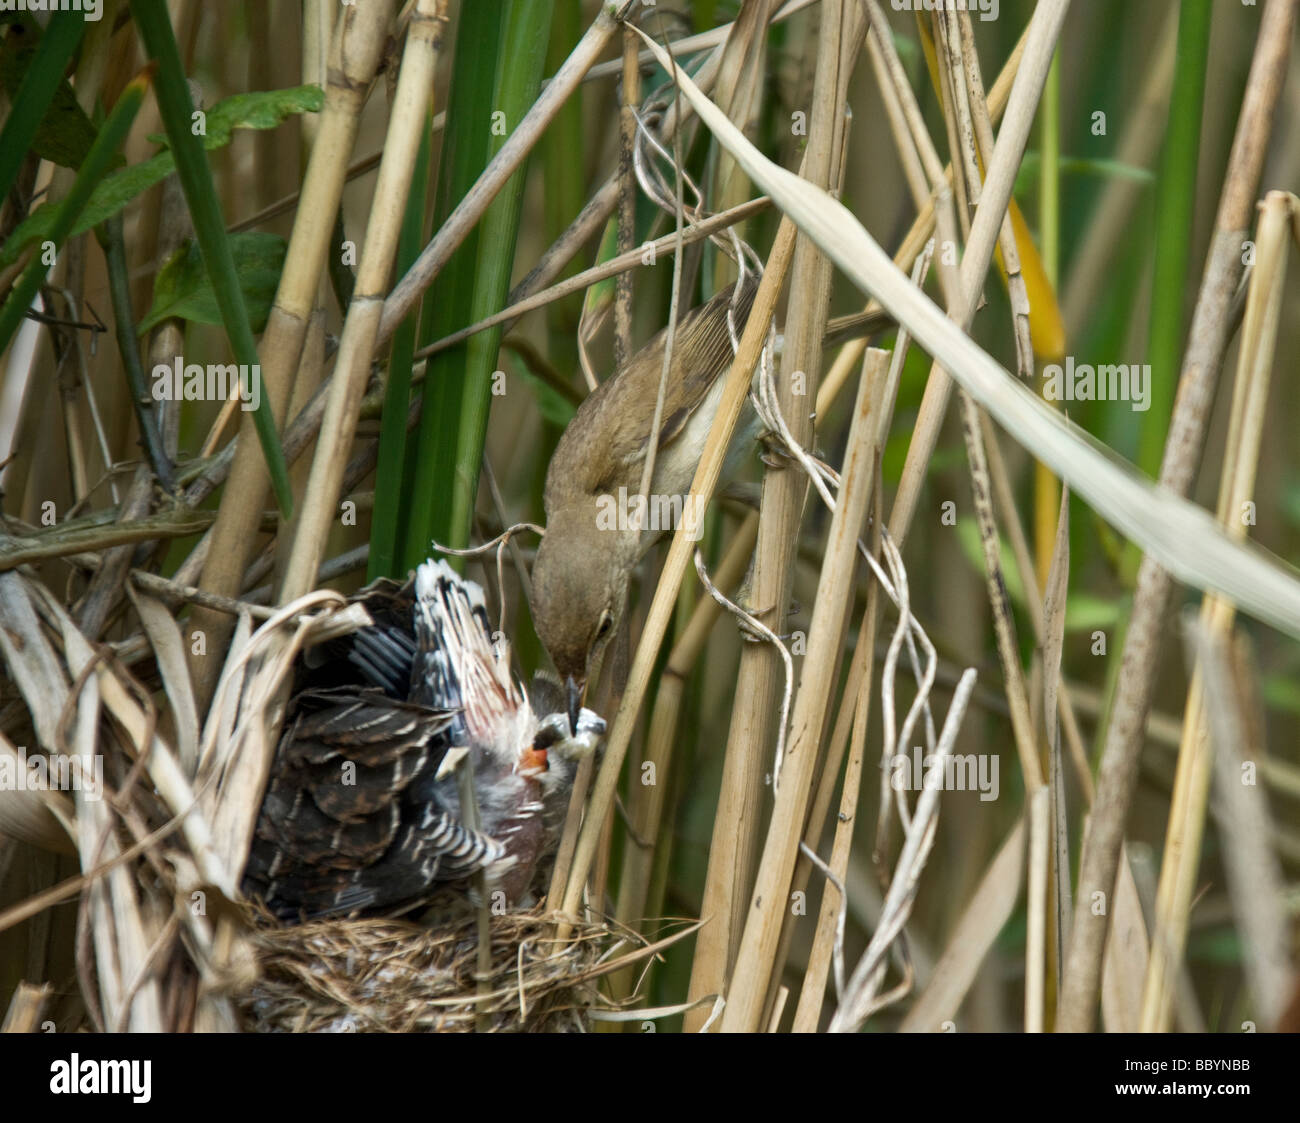 A Reed Warbler (Acrocephalus scirpaeus) removing faecal sac from young Cuckoo  (Cuculus canorus). - Stock Image